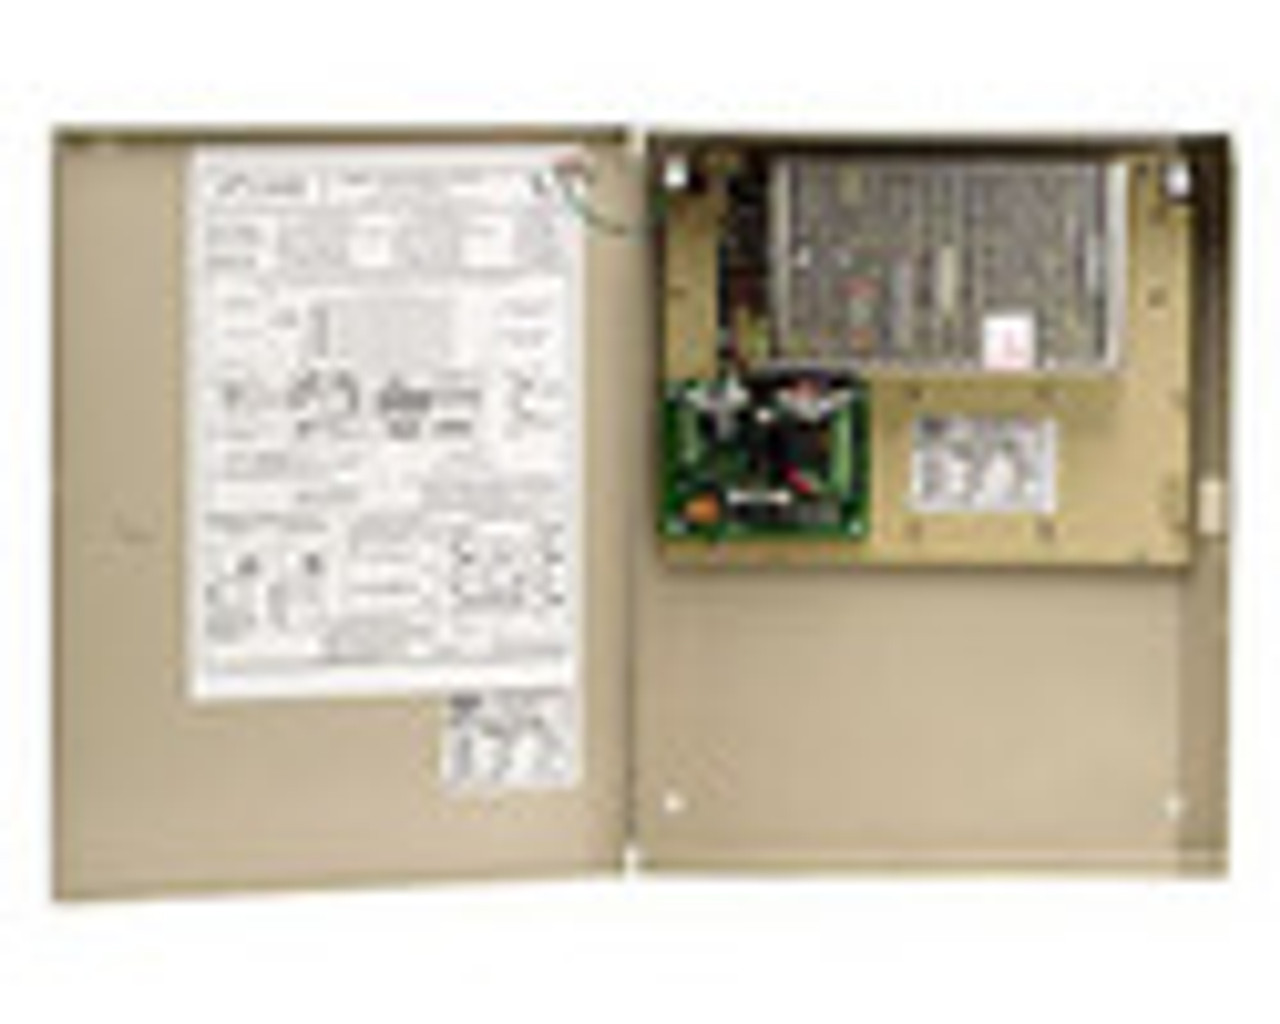 5600-12-FACMR DynaLock Multi Zone Heavy Duty 12 VDC Power Supply with Fire Alarm Module with Manual Reset